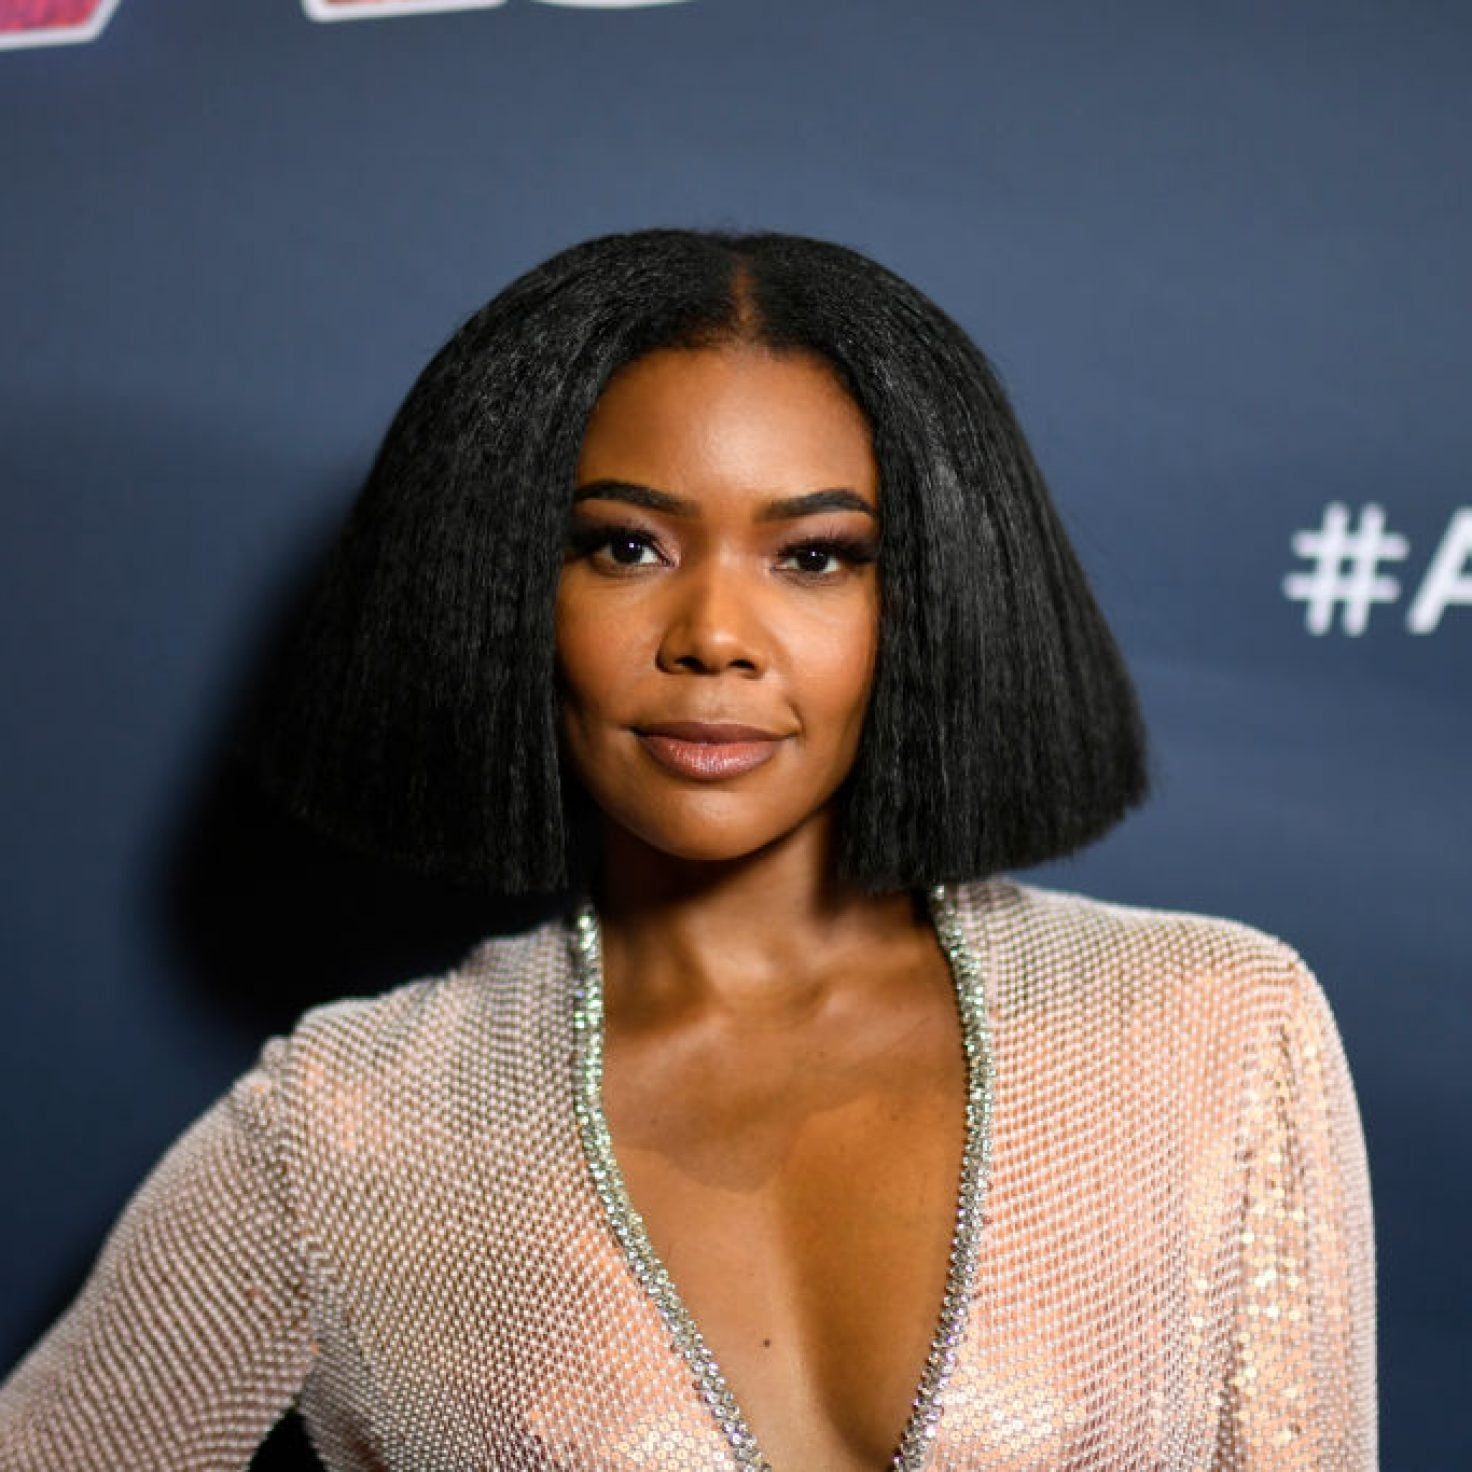 Gabrielle Union Reveals 'America's Got Talent' Literally Made Her Sick For 'Two Months Straight'